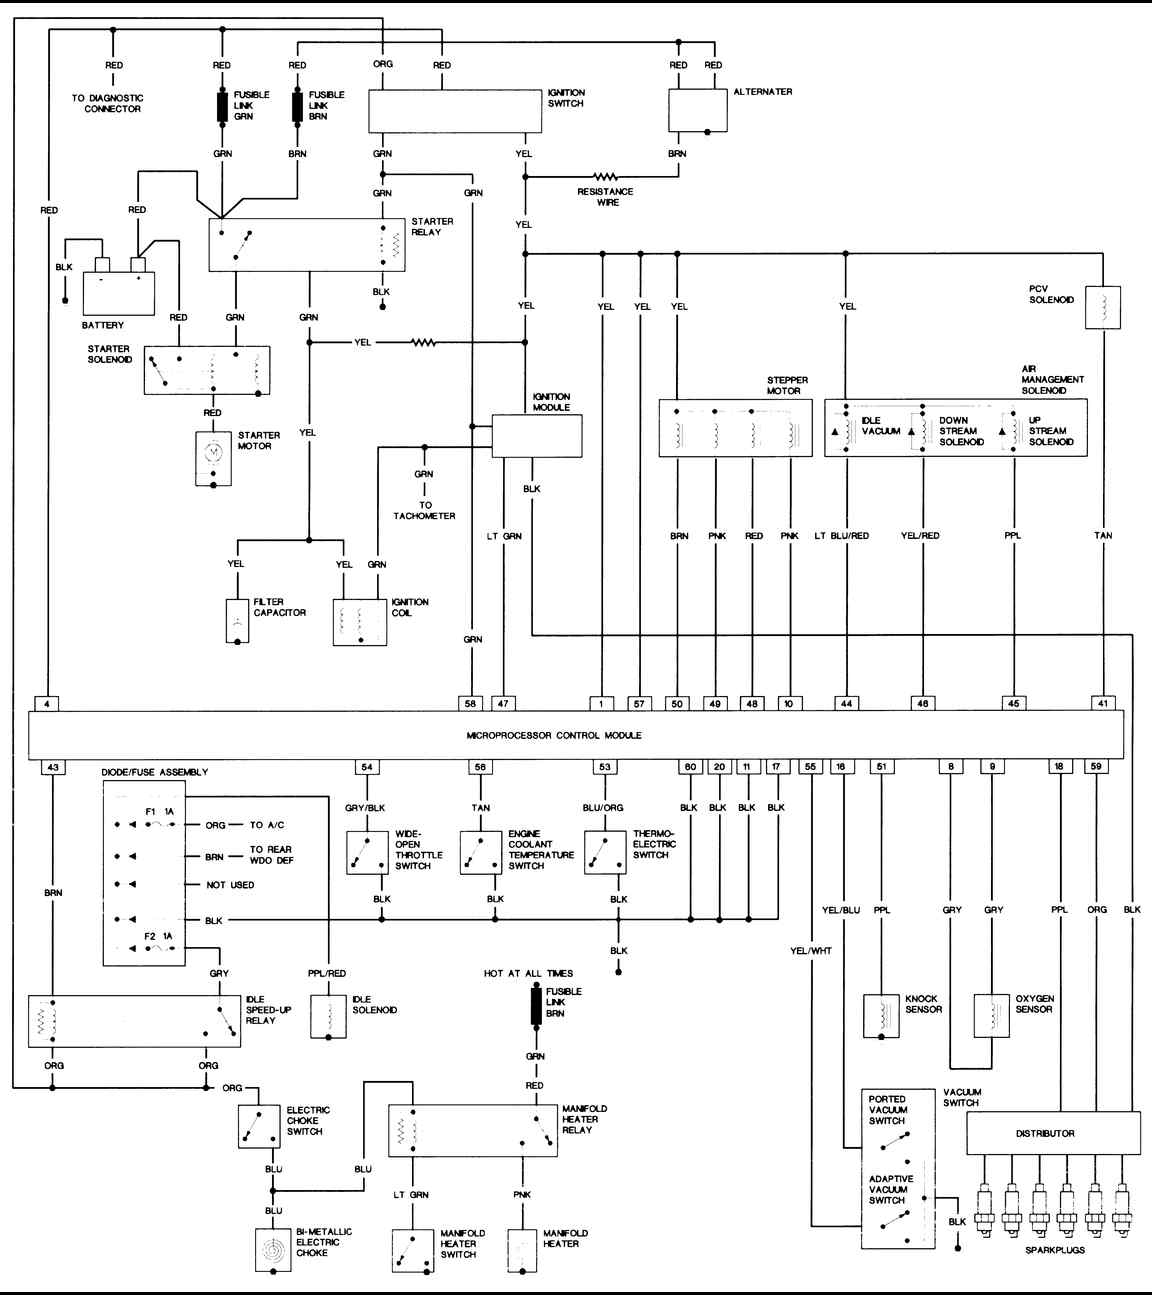 epz_926] 1988 jeep wrangler radio wiring diagram | wiring diagram epz_926 |  series-village.centrostudimad.it  centrostudimad.it